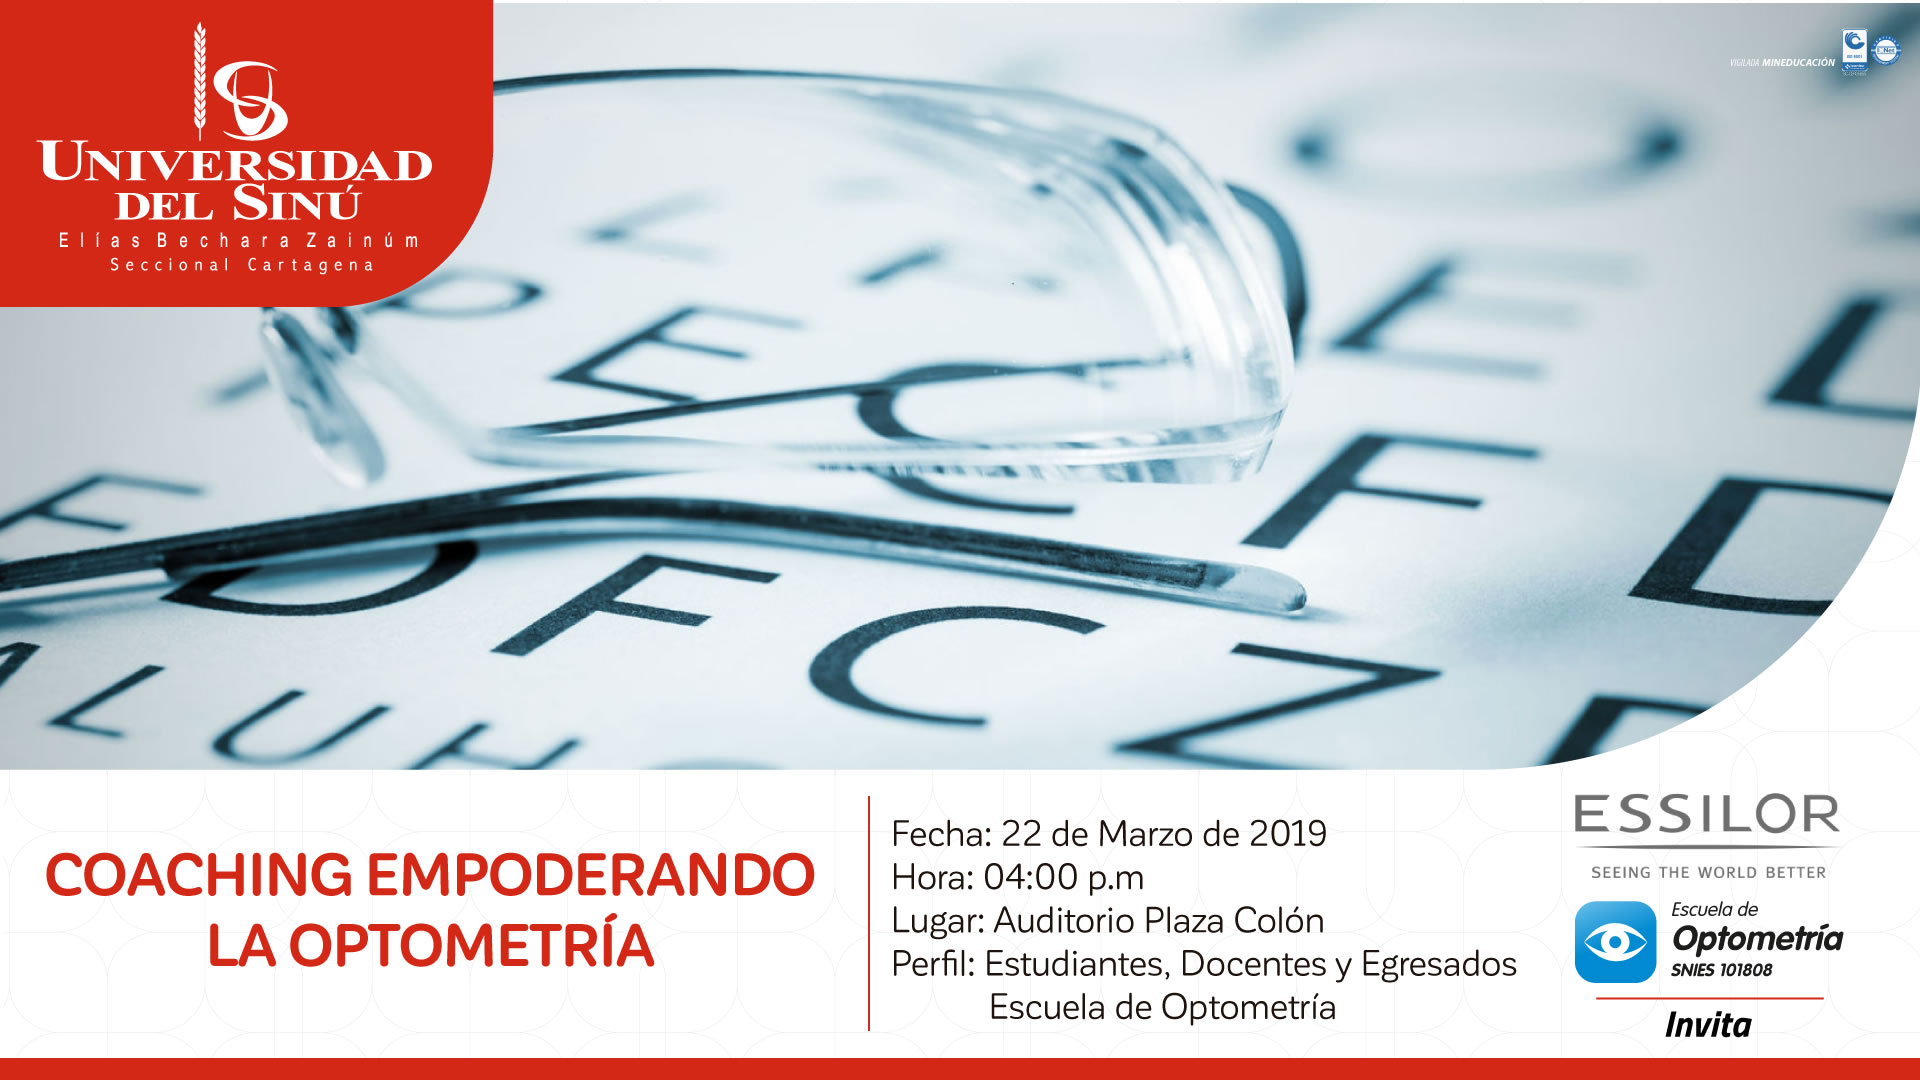 evento-optometria-2019-1p-3